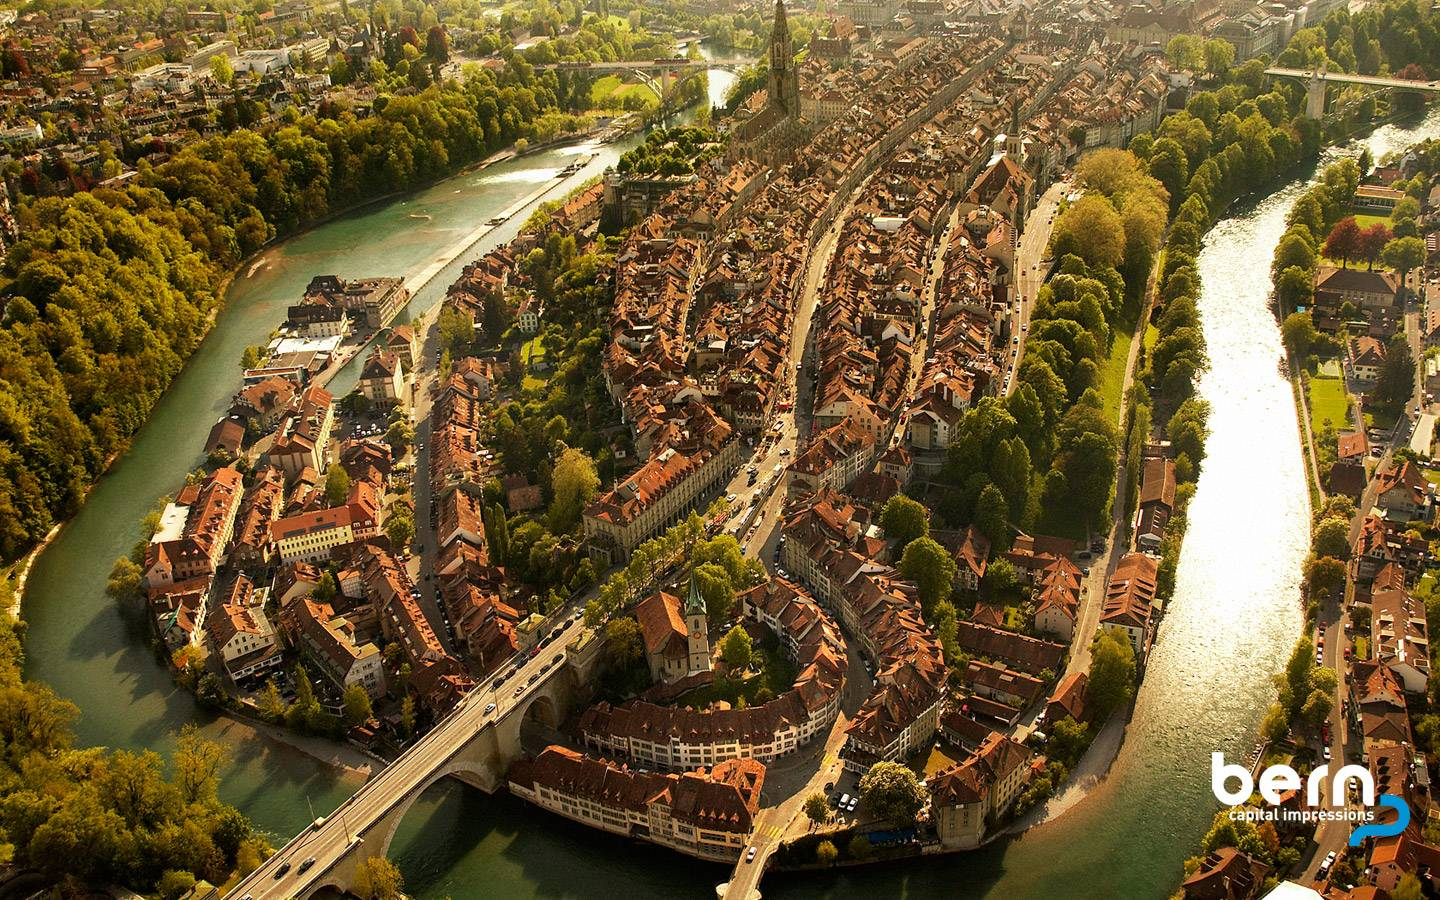 Bern, capital of Switzerland